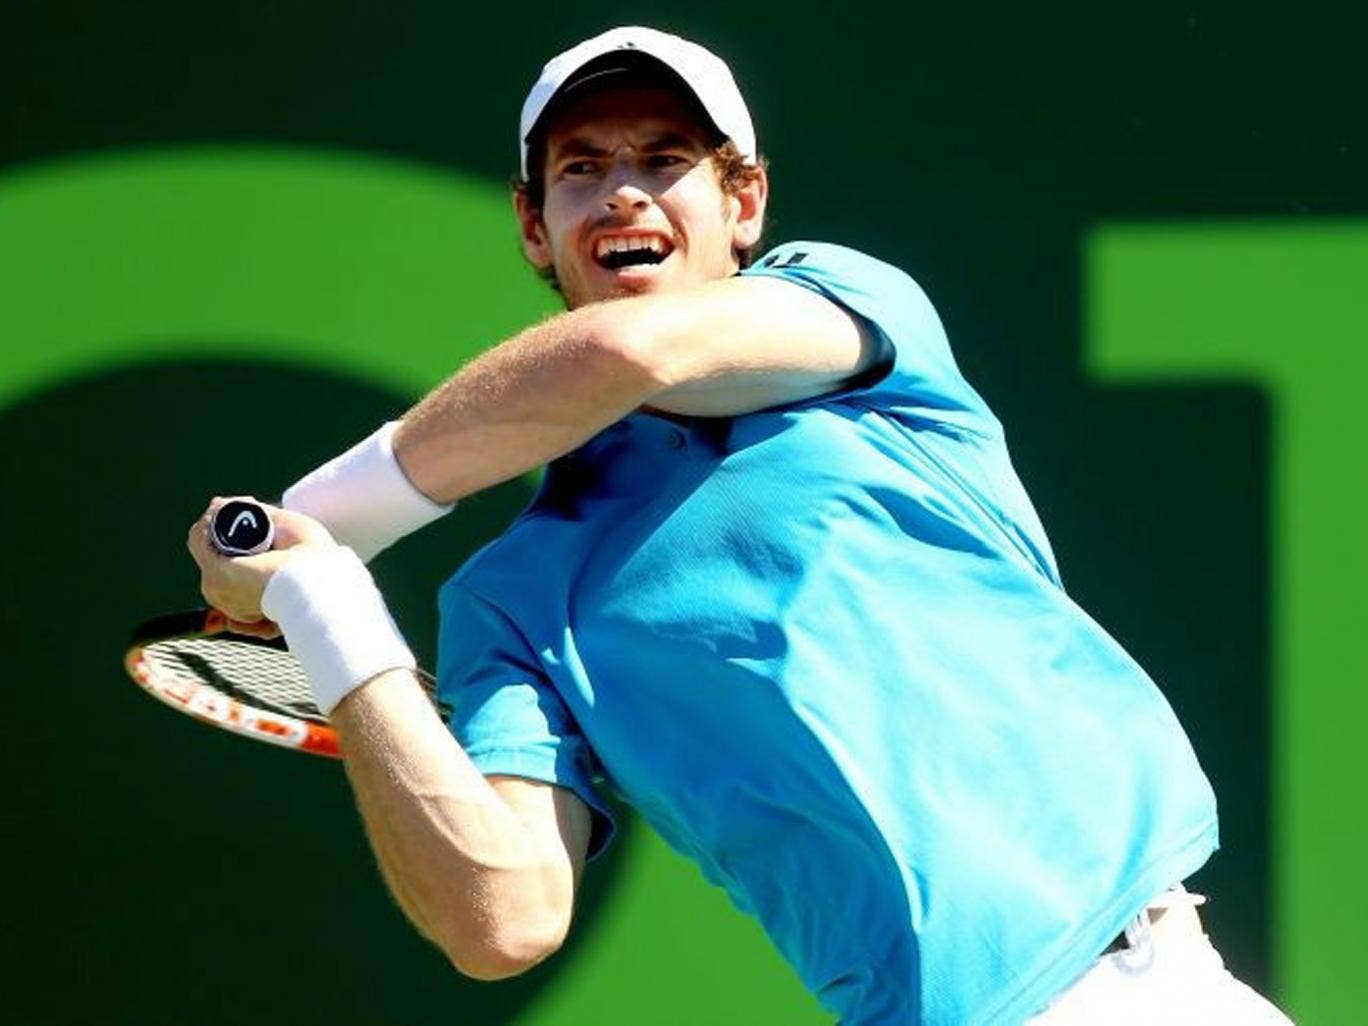 Andy Murray a shot to Jo-Wilfired Tsonga during the Sony Open at the Crandon Park Tennis Center on March 25, 2014 in Key Biscayne, Florida.